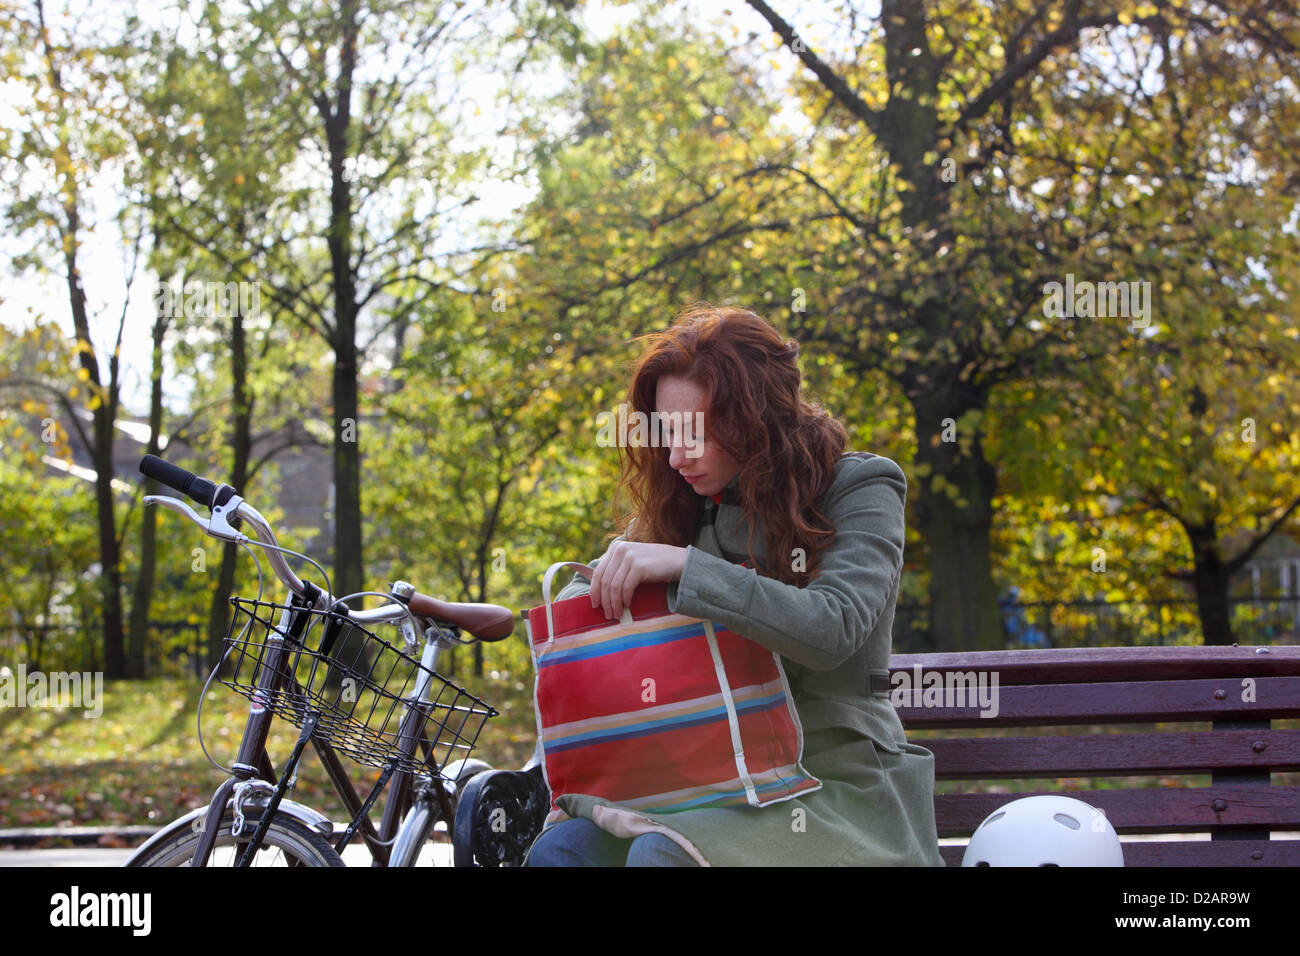 Woman looking through bag on bench - Stock Image